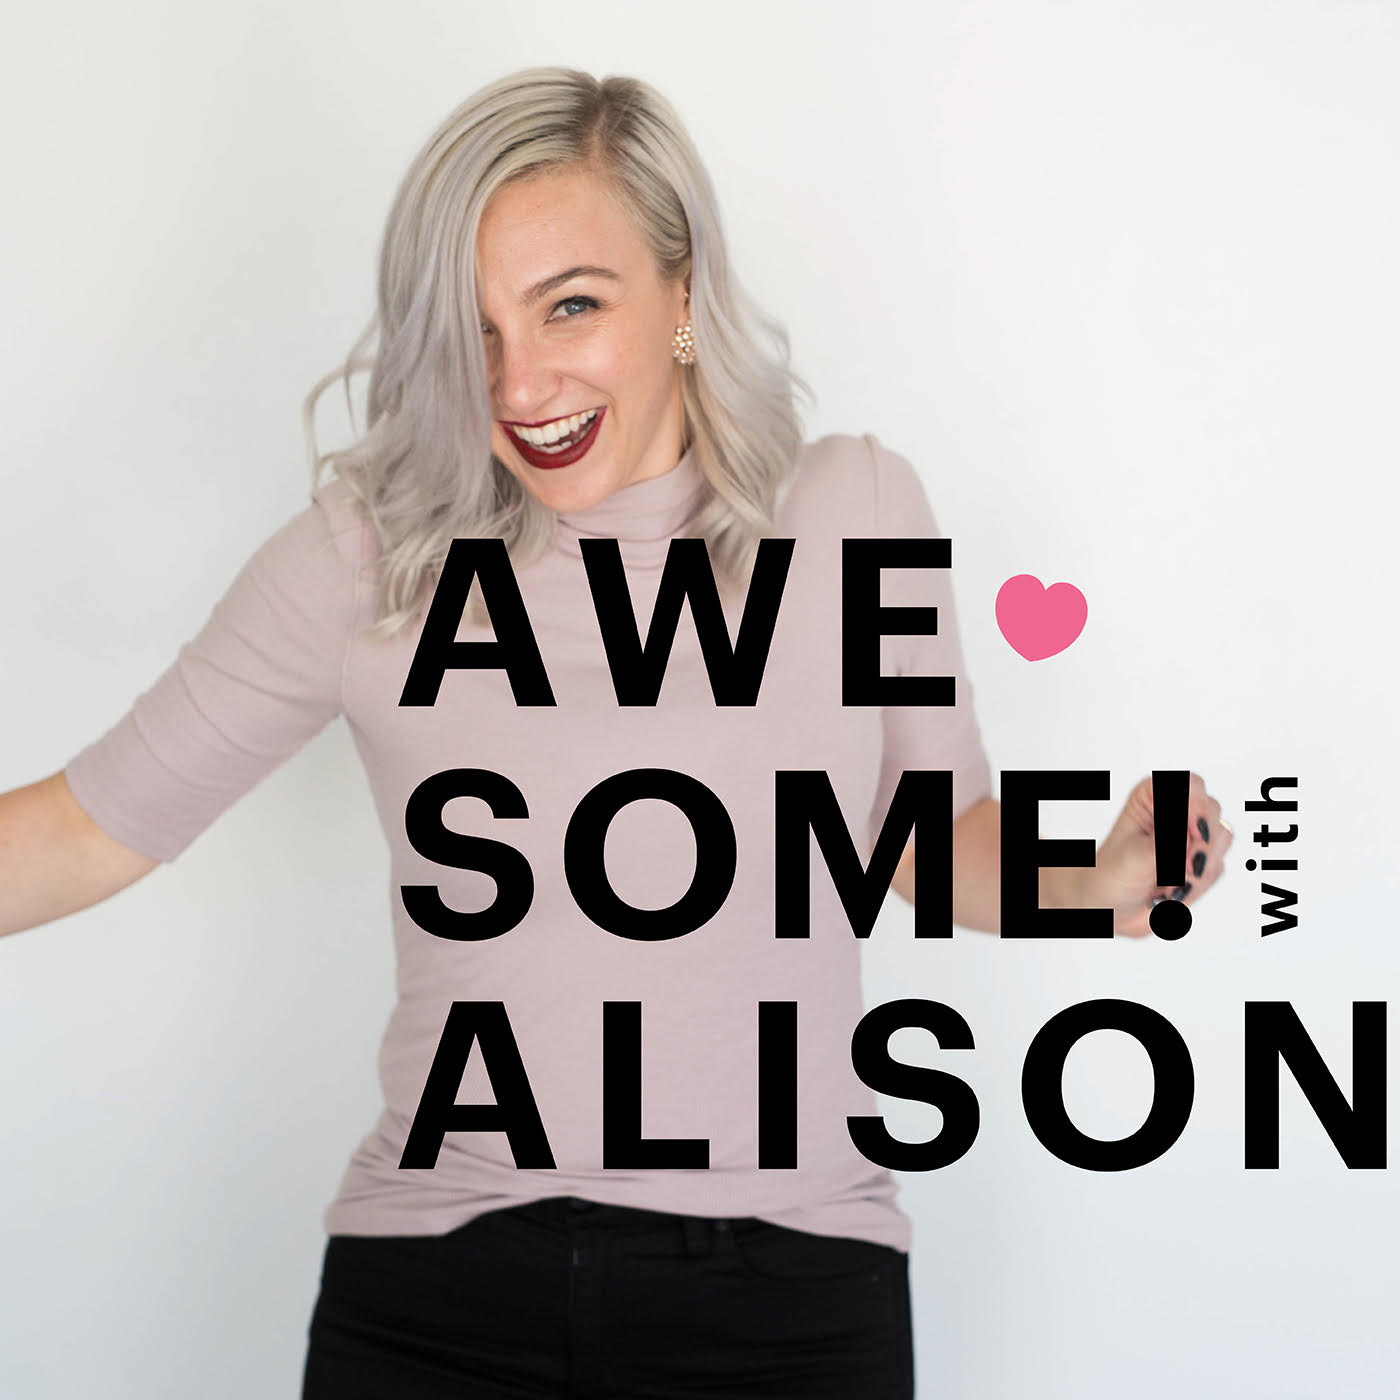 Awesome! with Alison Podcast.Image: The Alison Show.